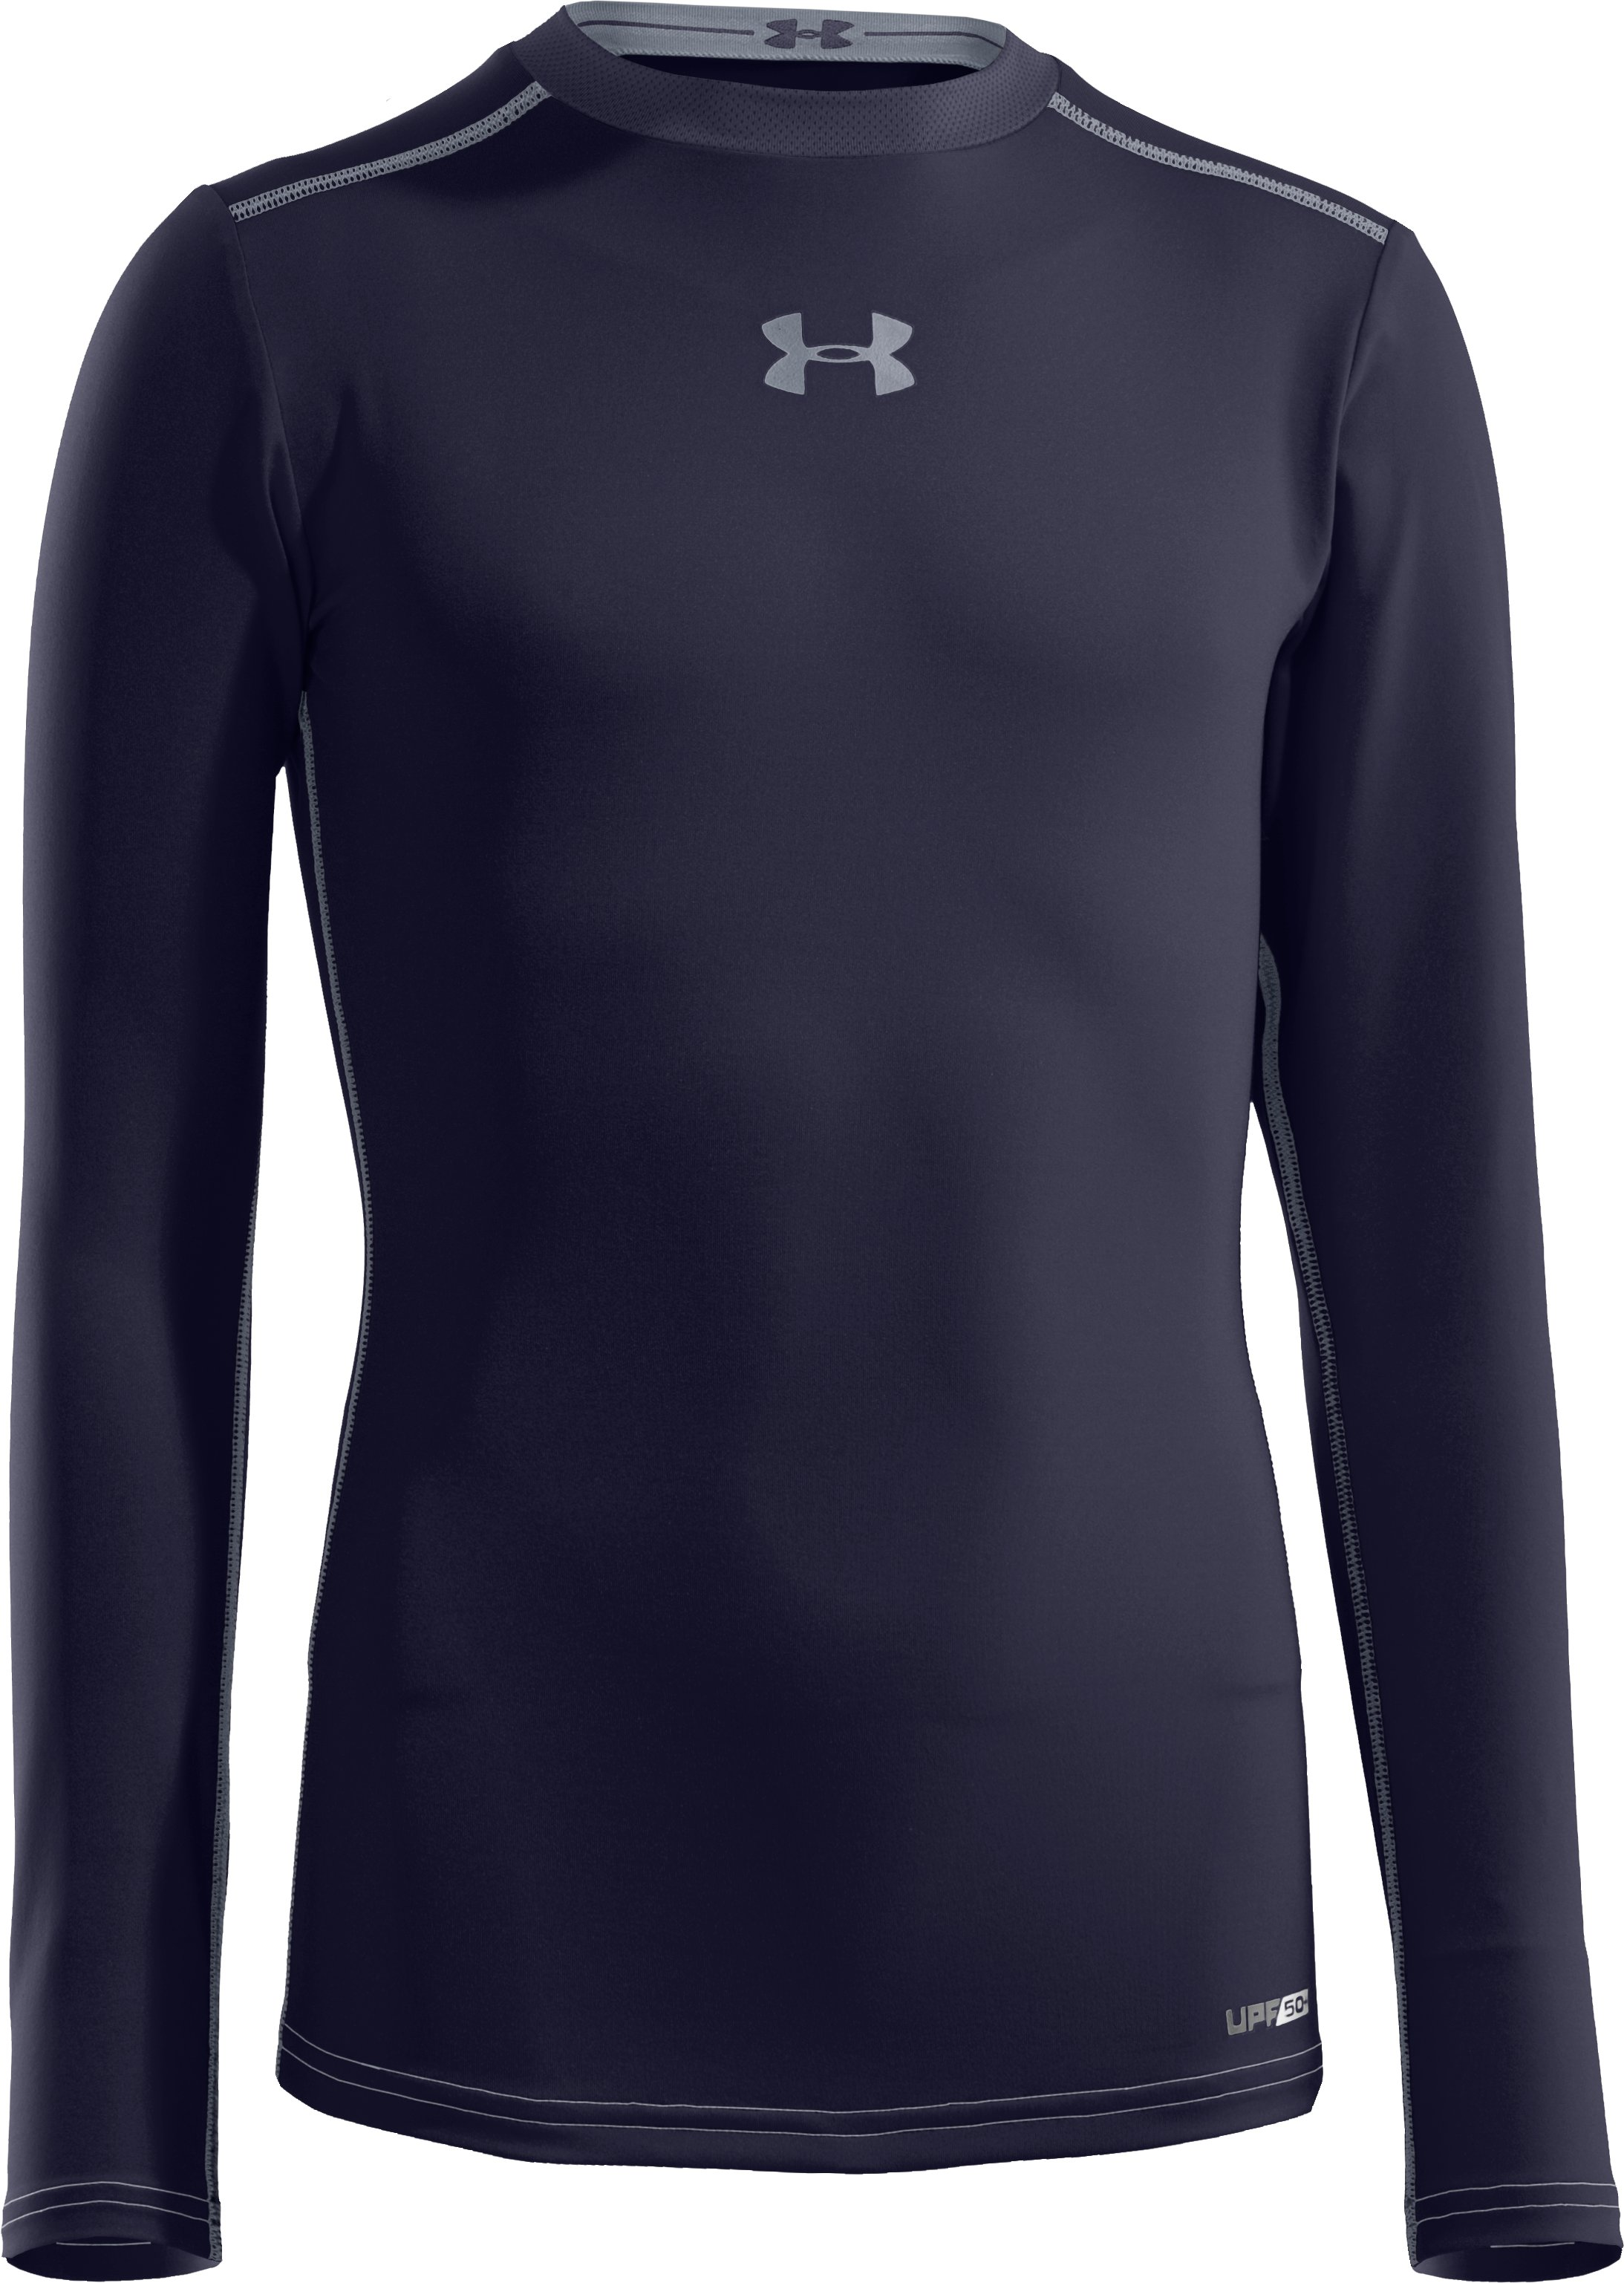 Boys' HeatGear® Sonic Fitted Long Sleeve, Midnight Navy, zoomed image